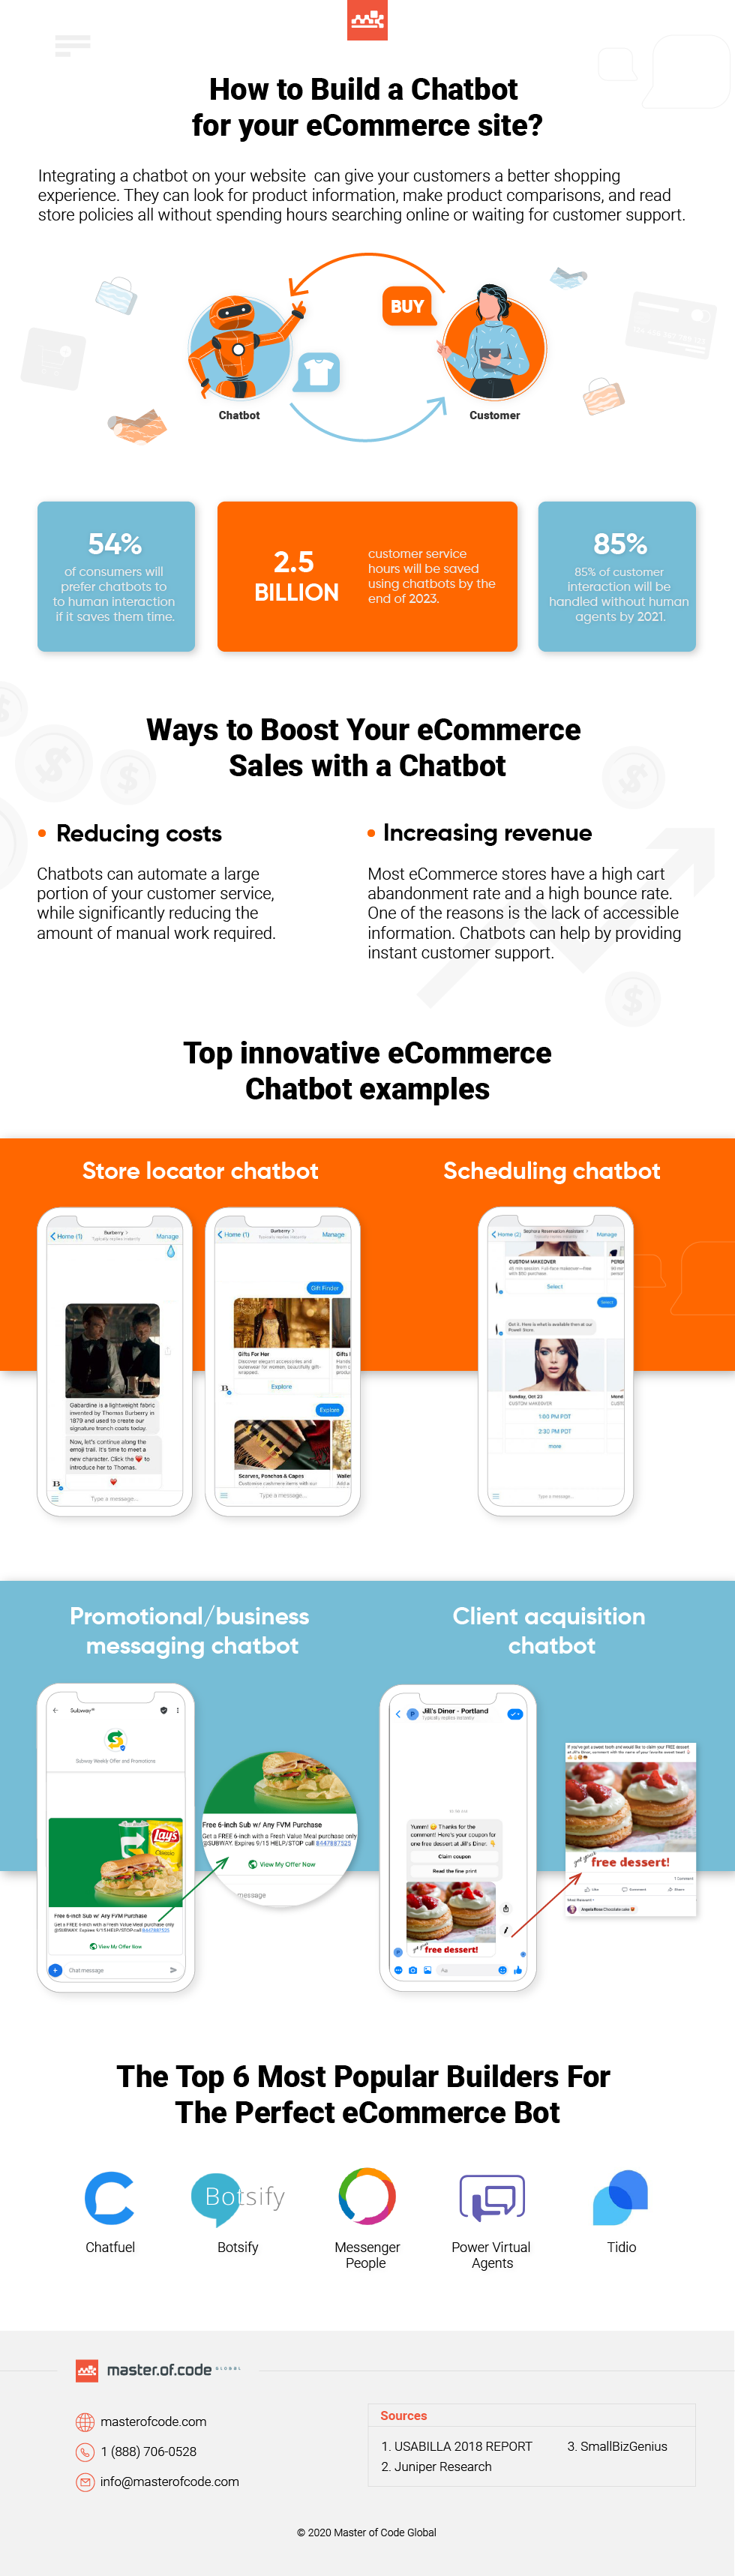 How to Create the Perfect Chatbot for Your eCommerce Store and Increase Profits #infographic